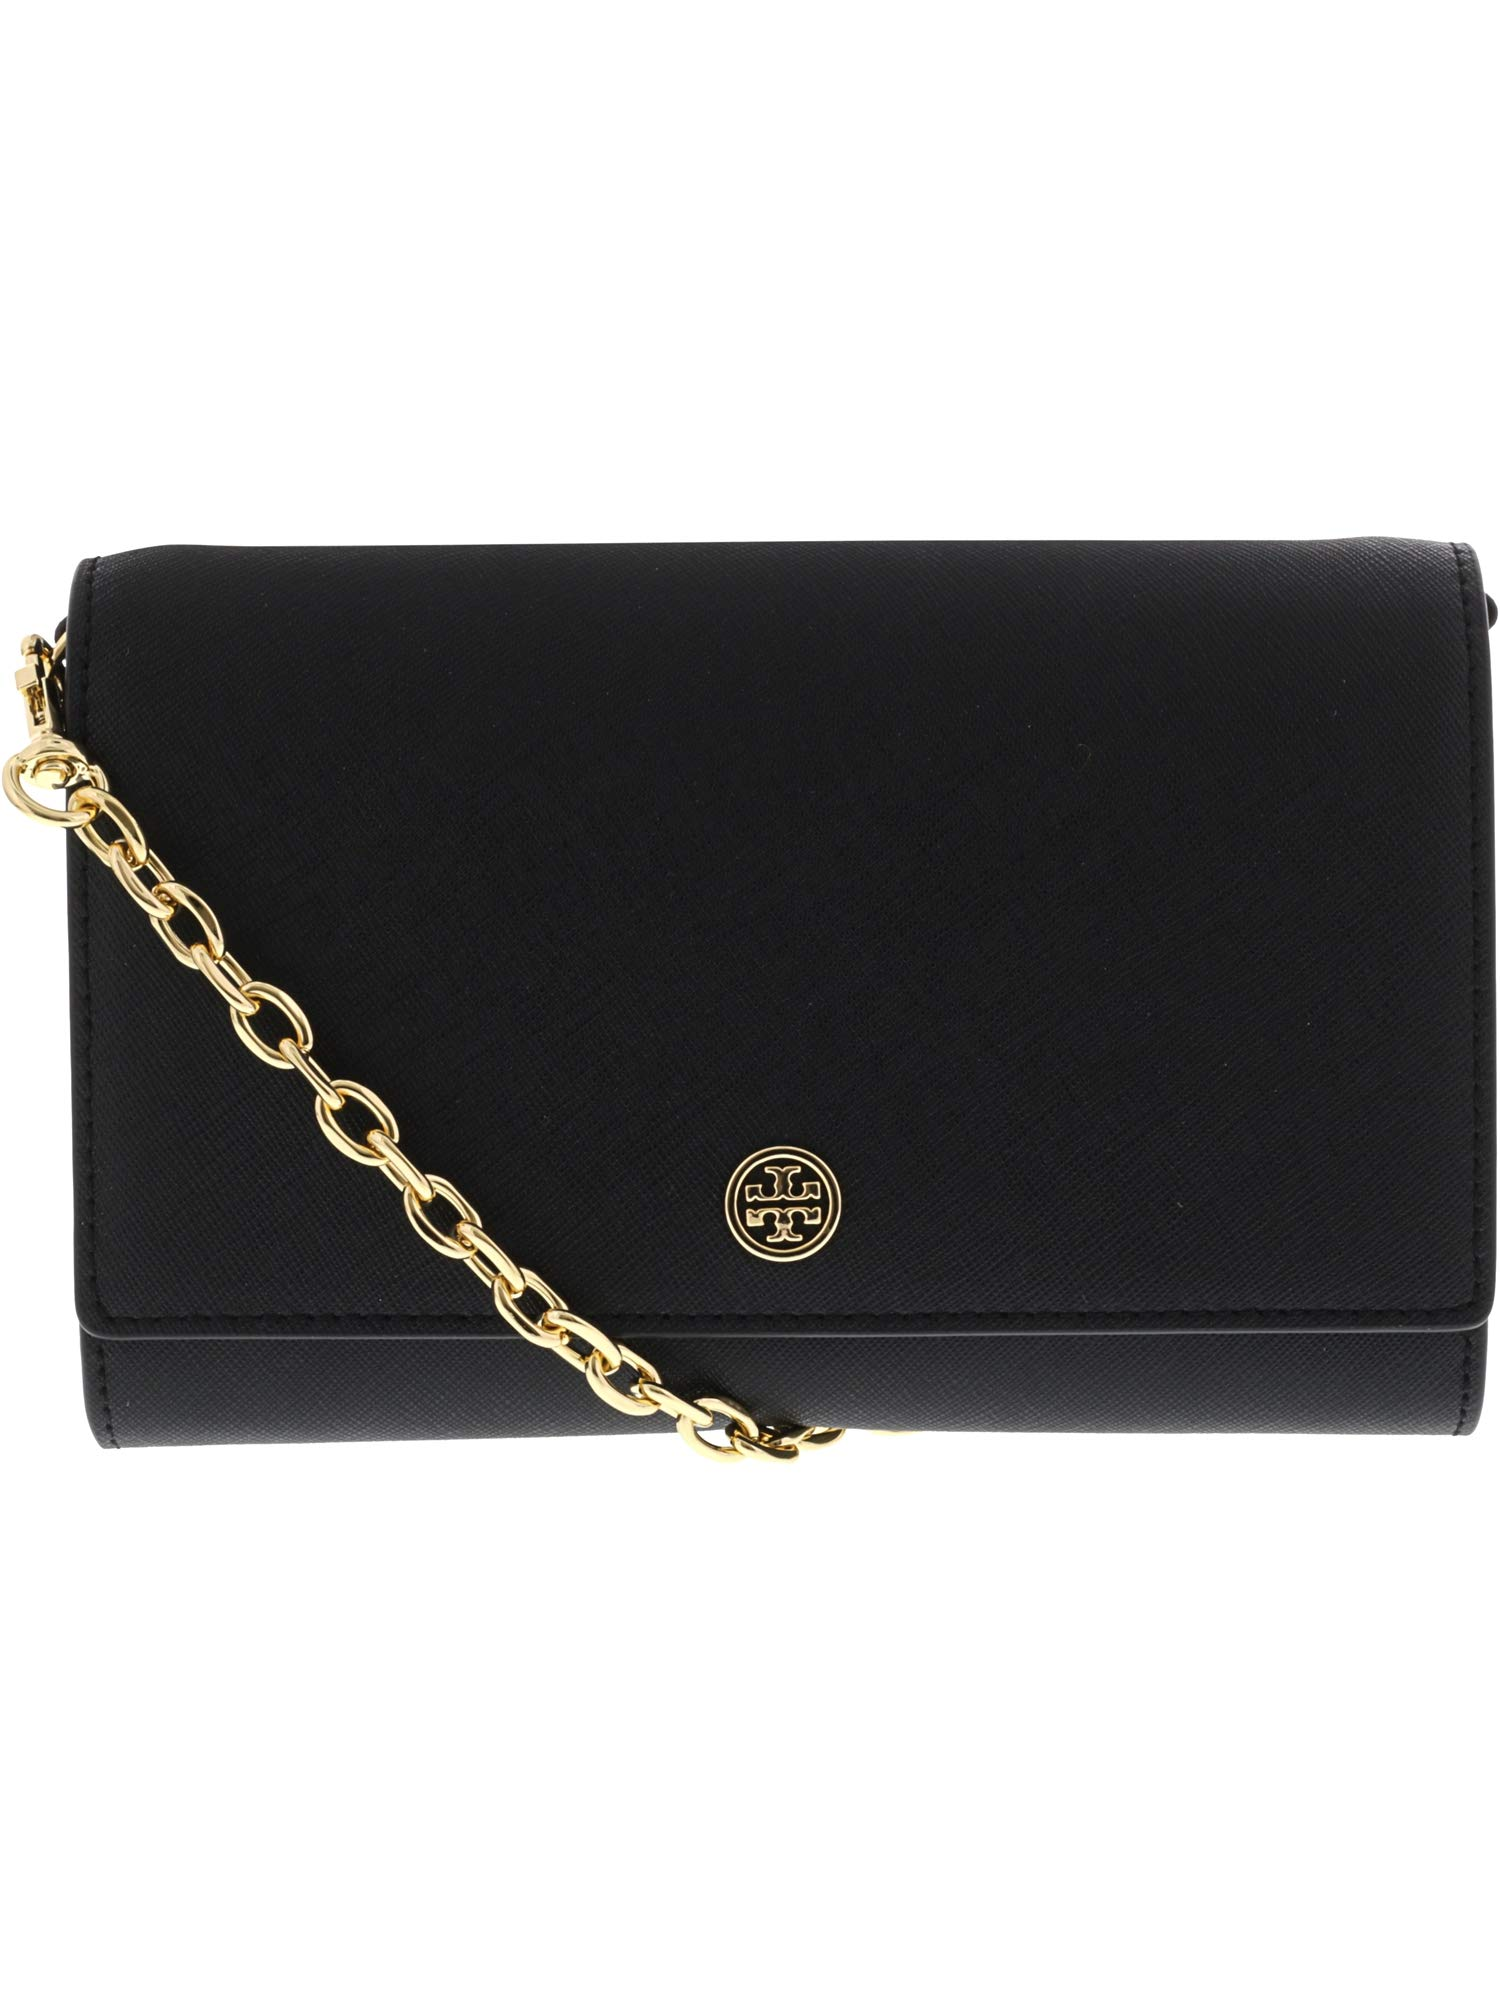 Tory Burch Women's Robinson Wallet on a Chain, Black/Navy, One Size